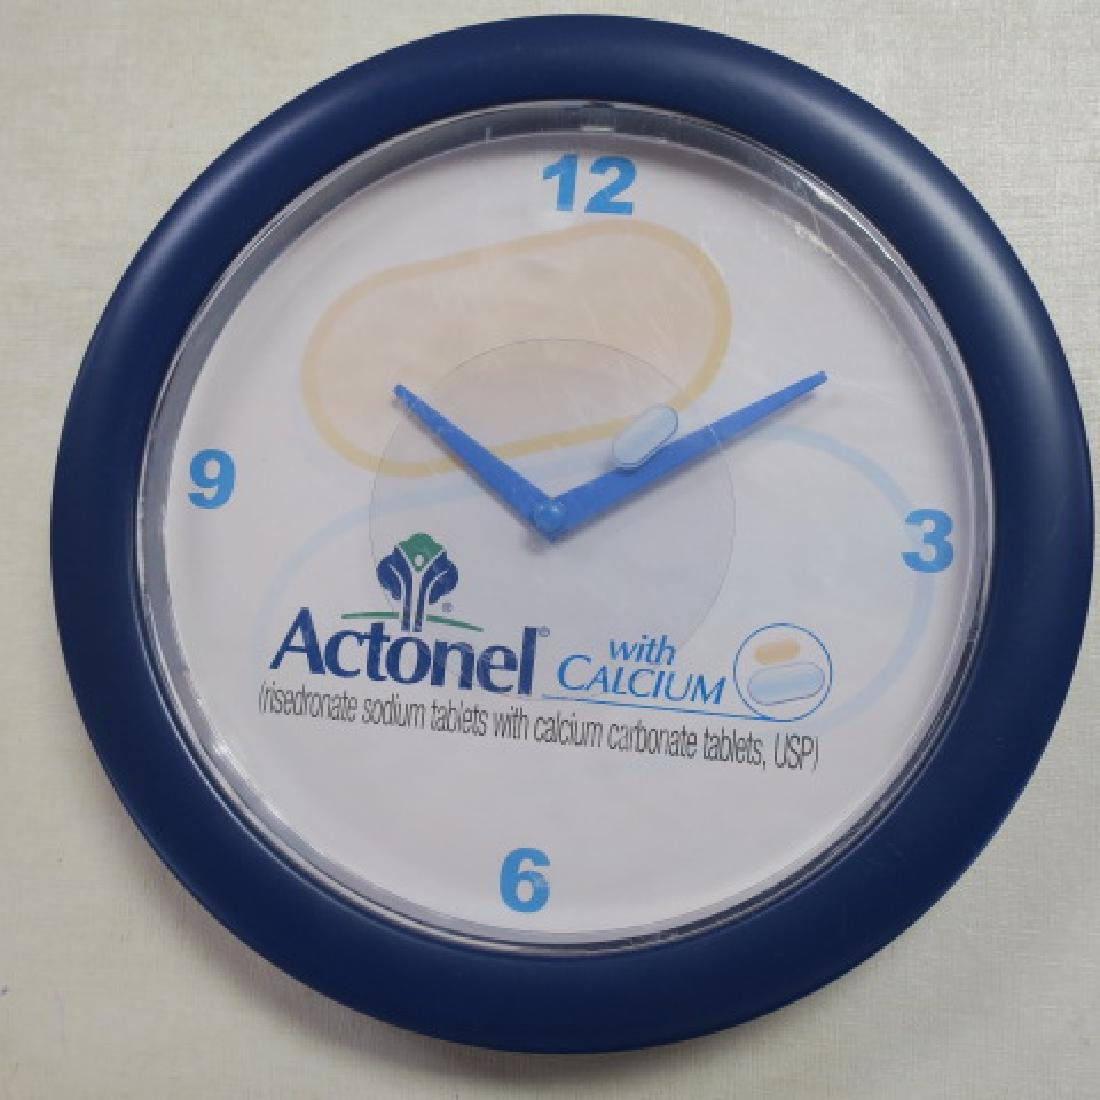 PROVENTIL and ACTONEL with CALCIUM Wall Clocks: - 4